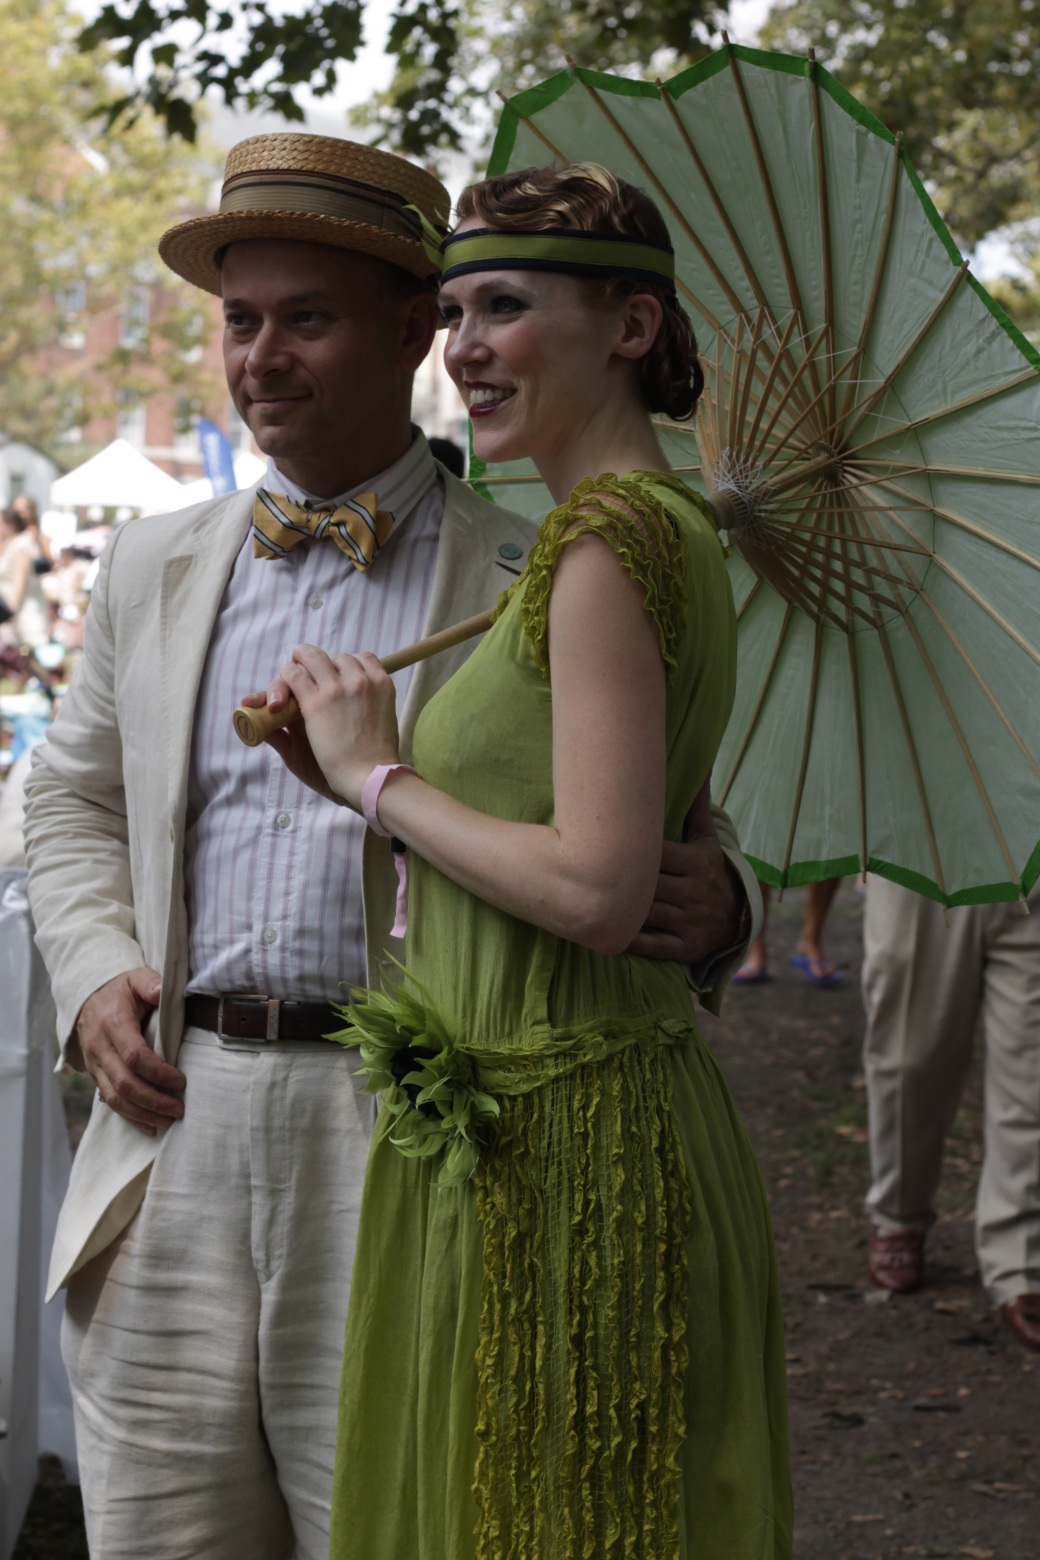 new york city governors island jazz age lawn party august 17 2014 58